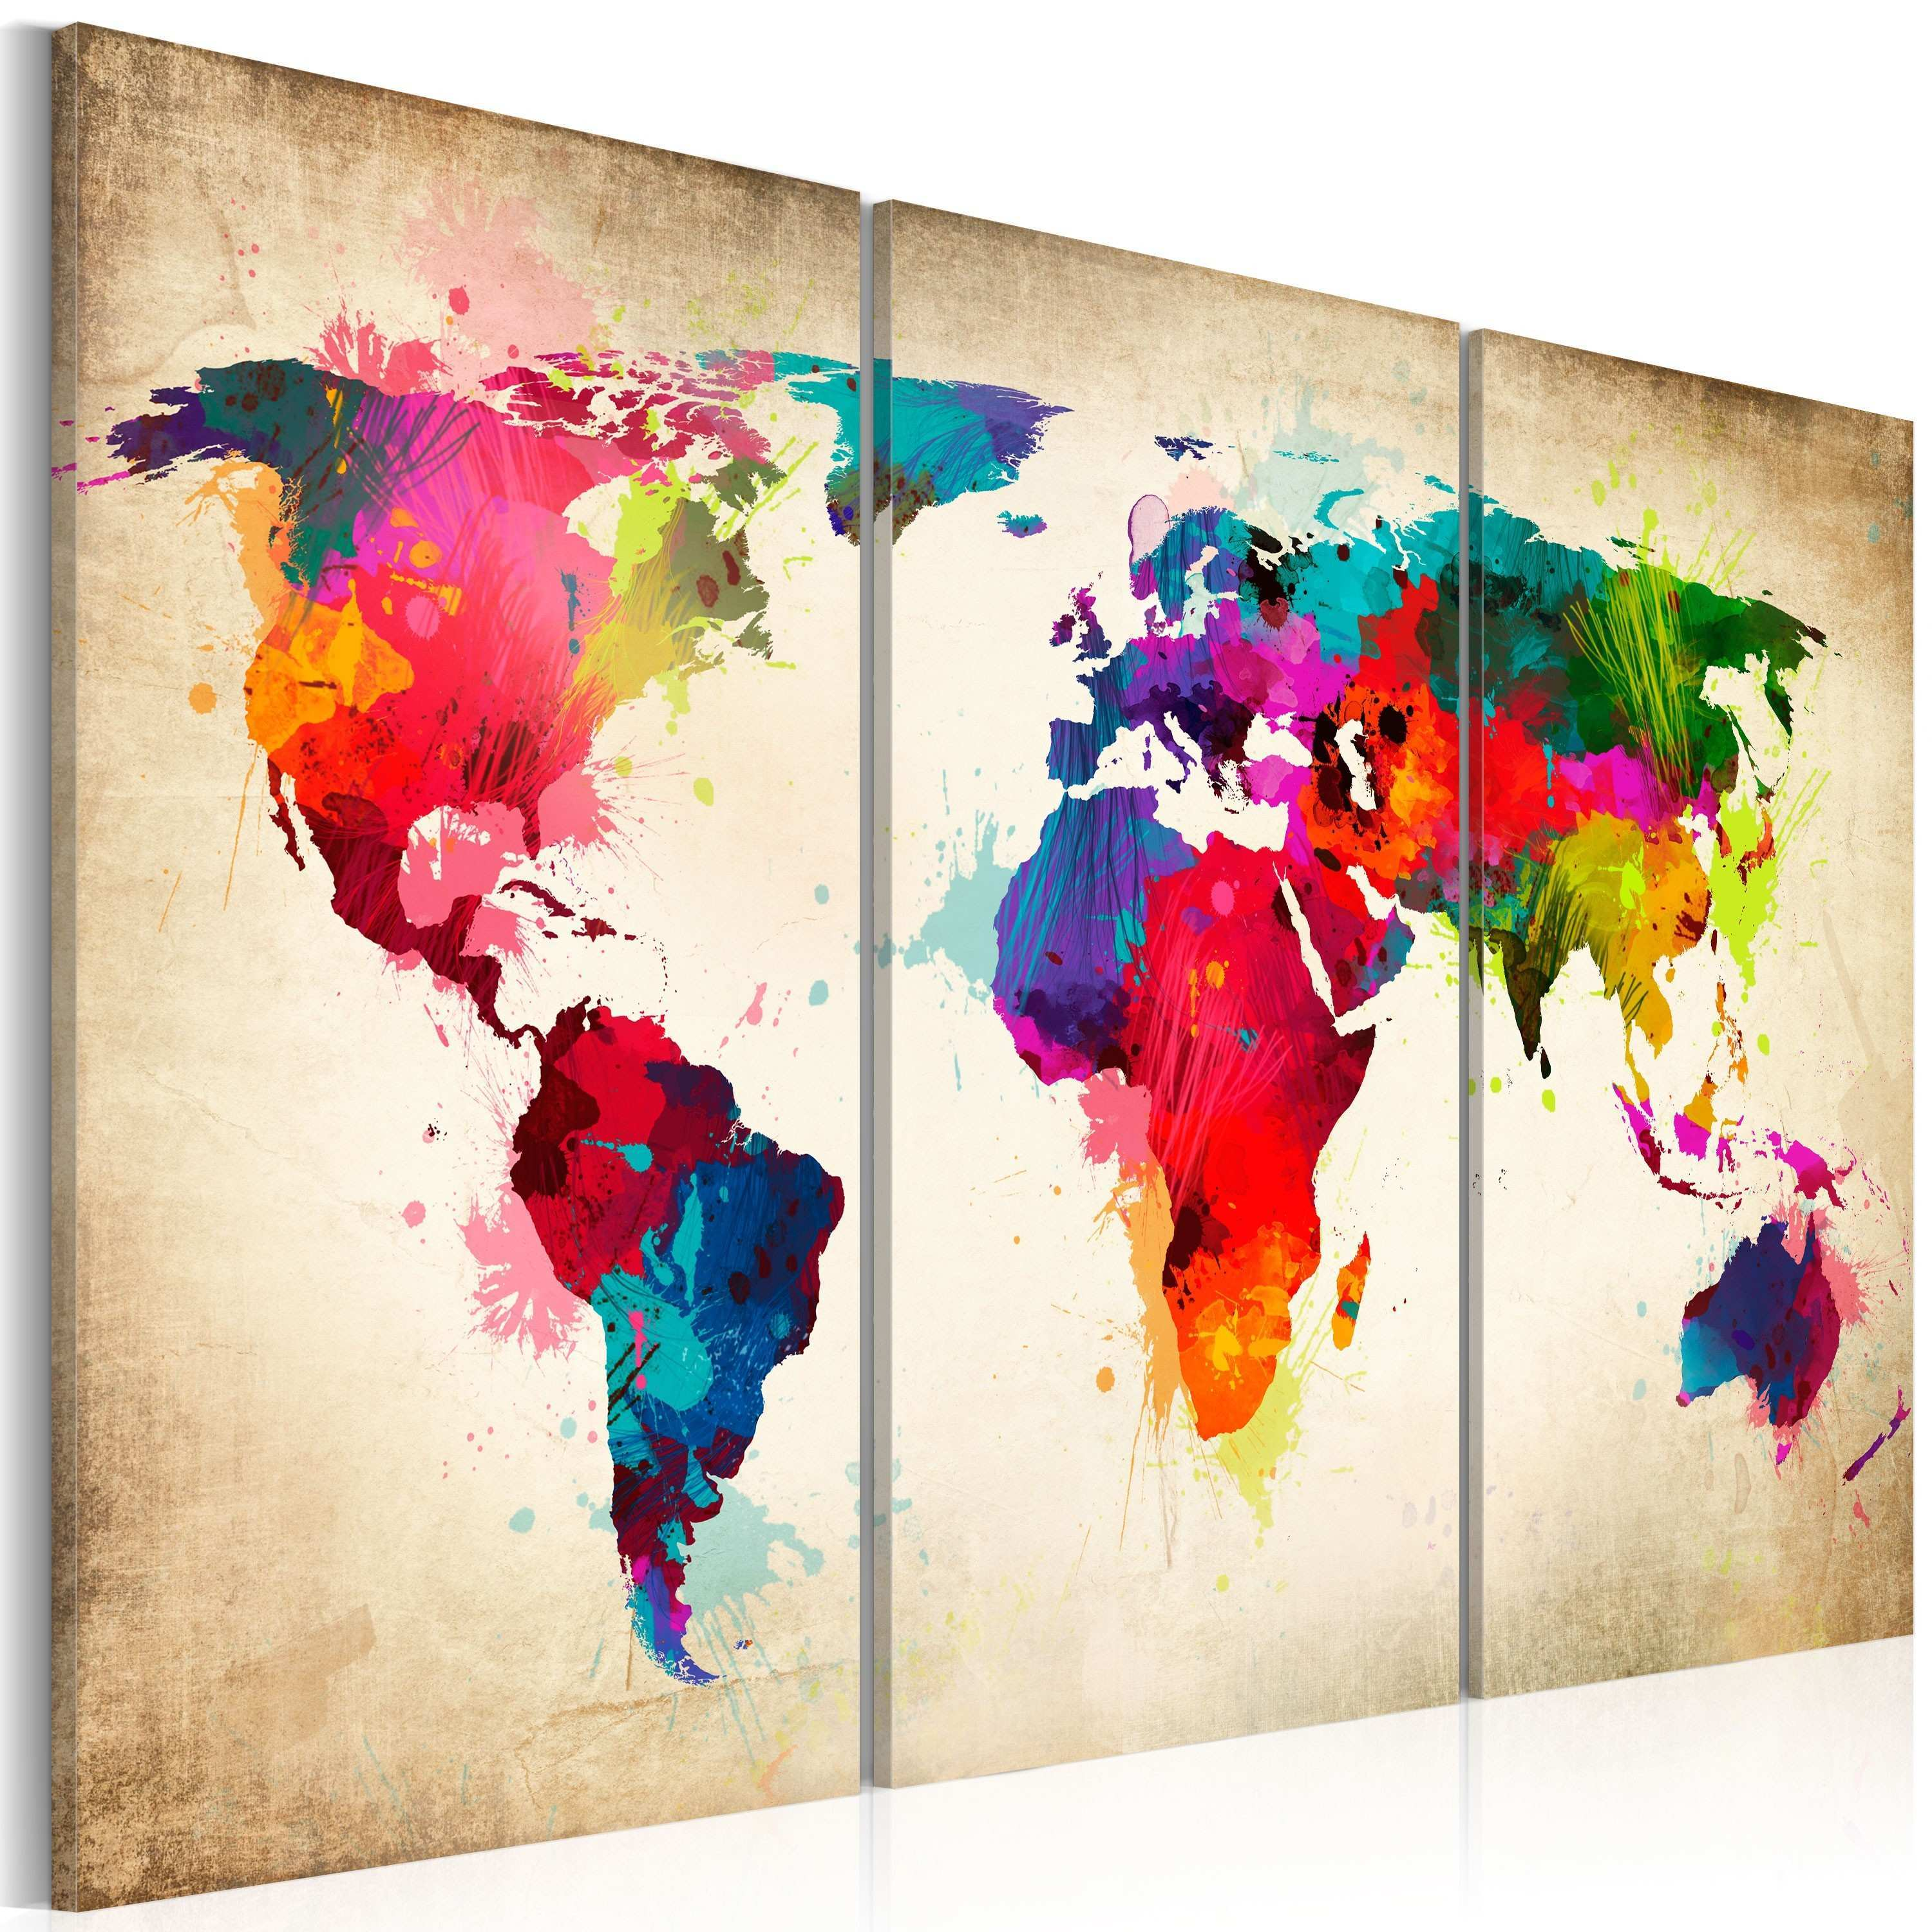 3 Piece Wall Art Painting Best Of Canvas Painting Rainbow Continents World Maps Canvas Prints